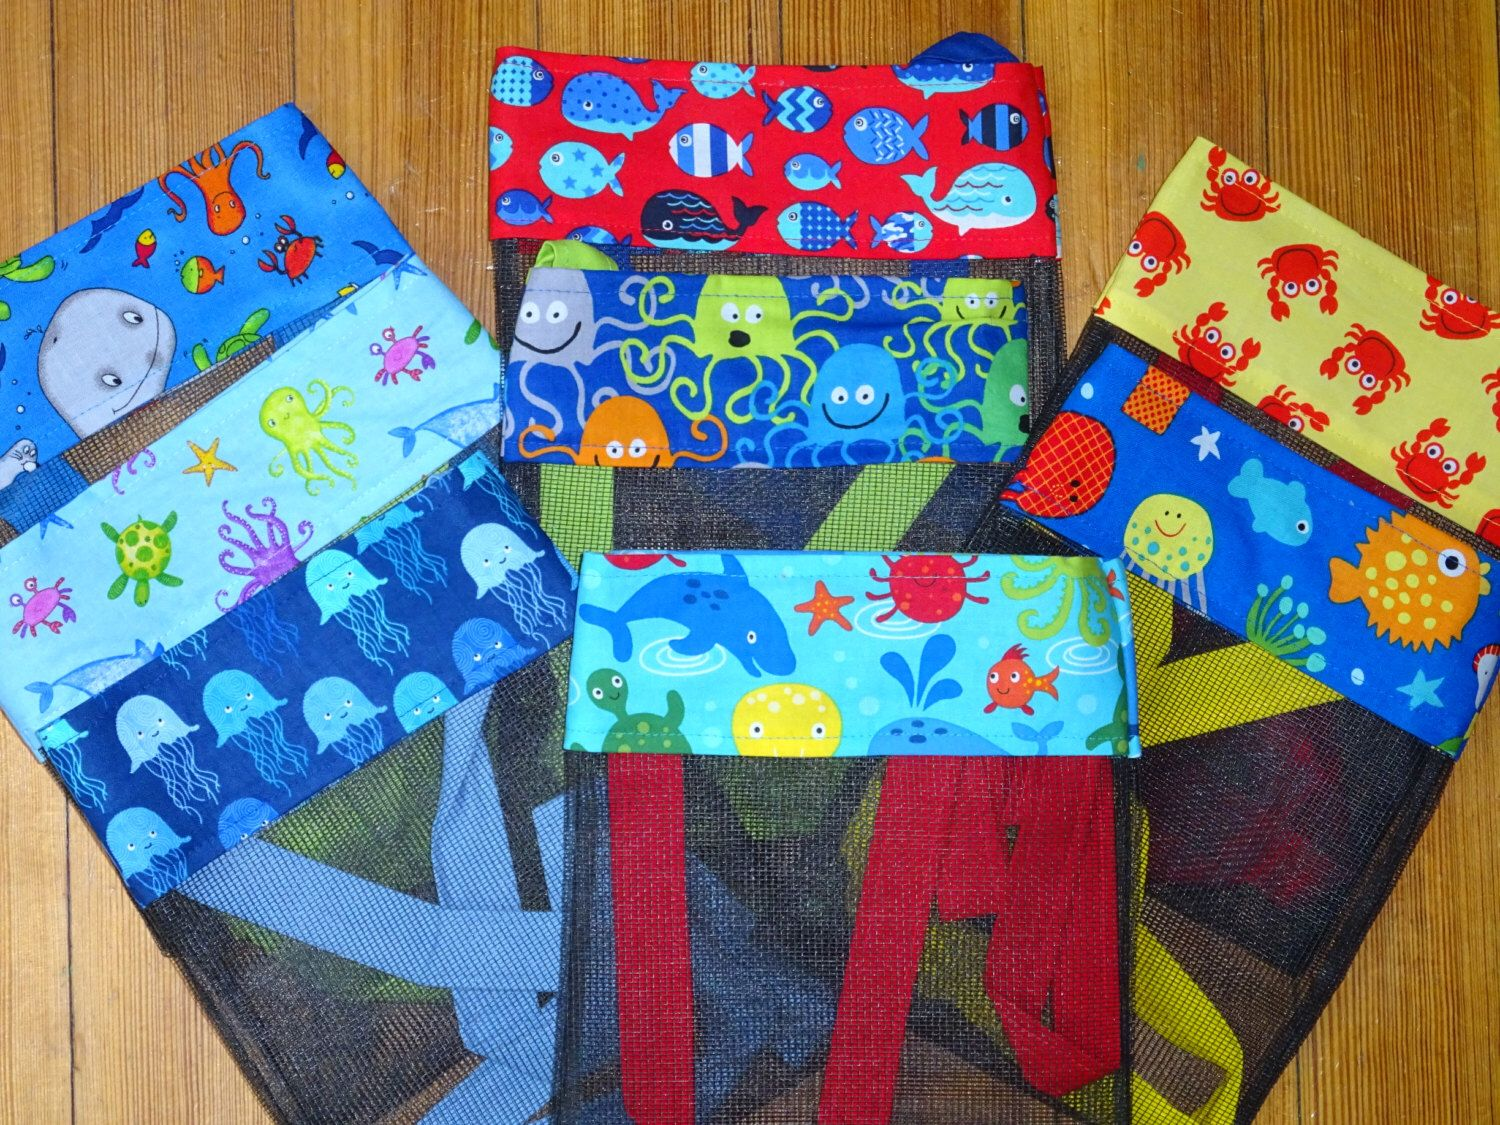 Beachcomber Bags Summer 2015 #1 by OniontownDesigns on Etsy https://www.etsy.com/listing/235290286/beachcomber-bags-summer-2015-1